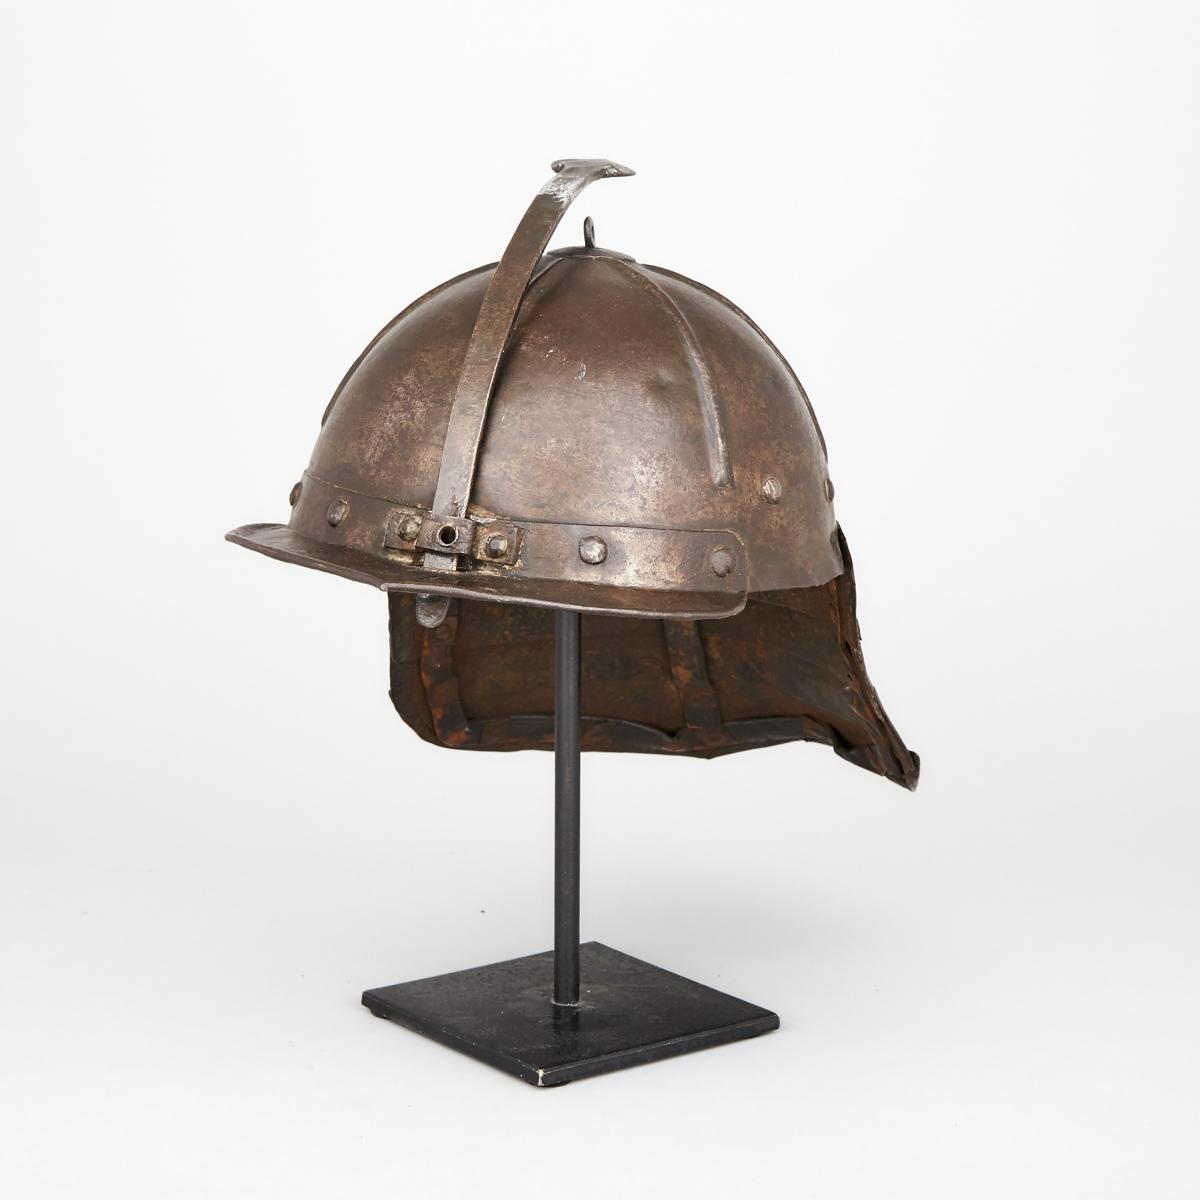 North European Lobstertail Helmet, early 17th century, height 9.5 in — 24.1 cm - Image 2 of 2